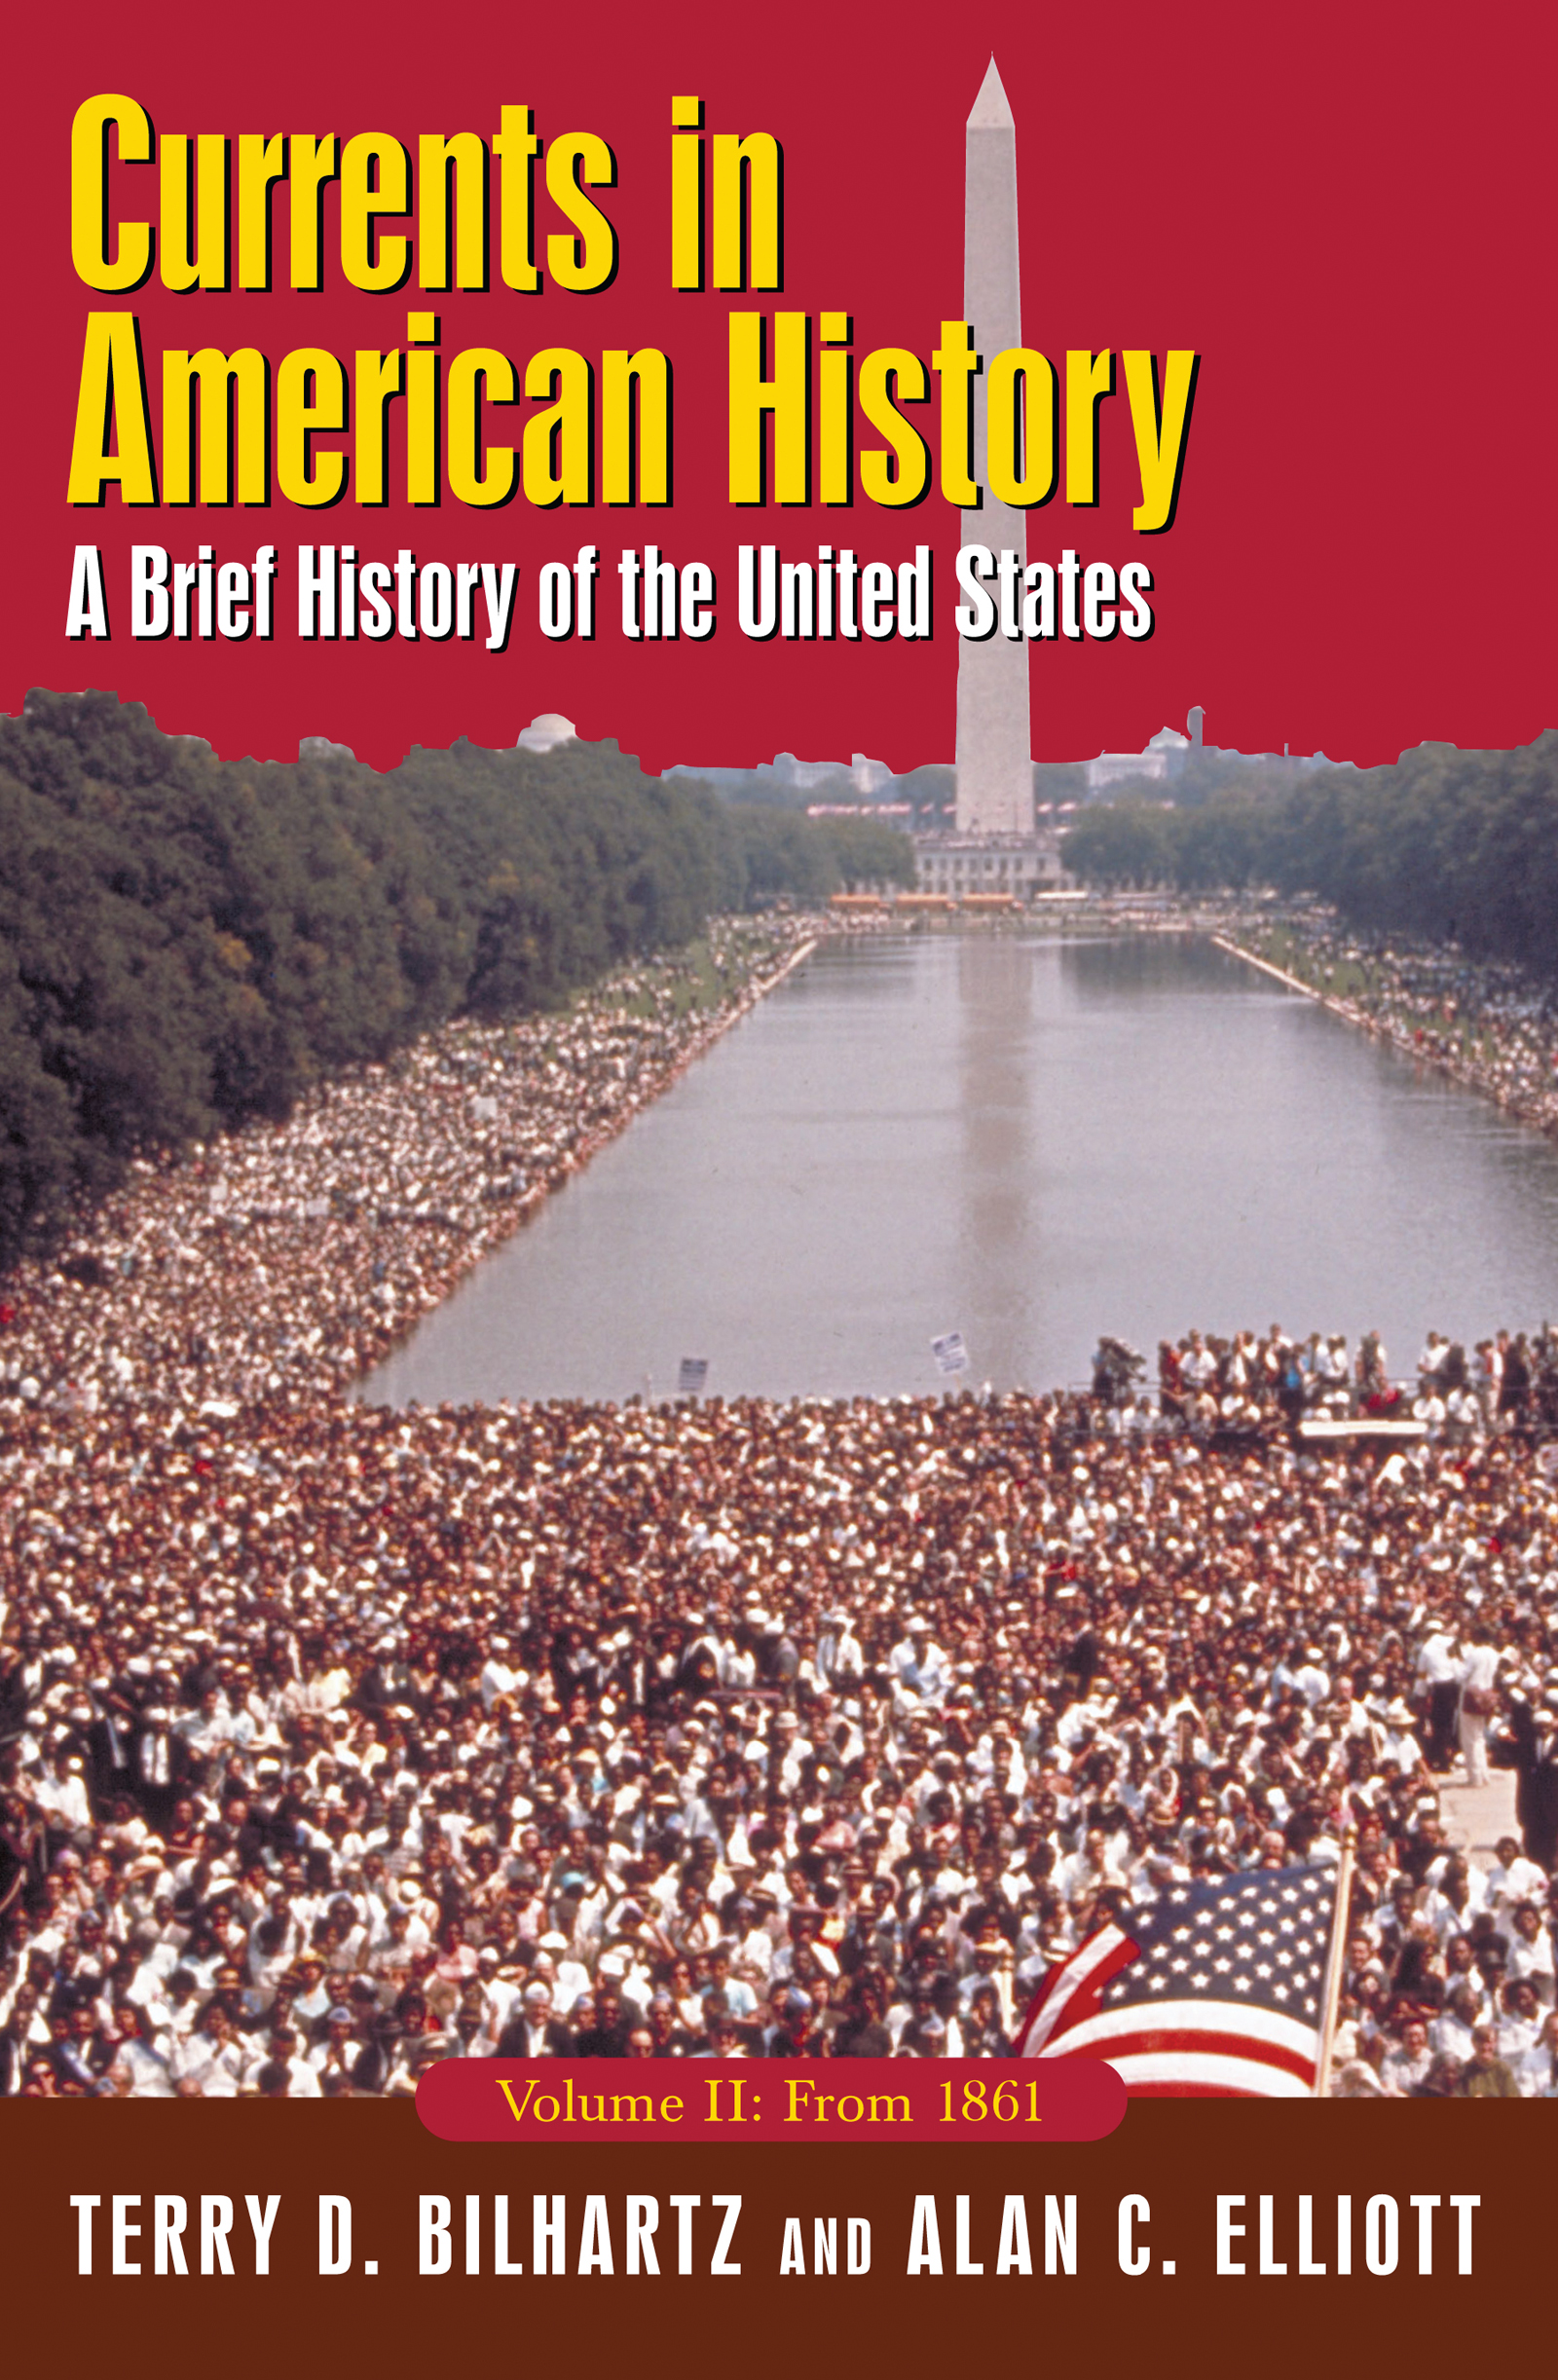 Currents in American History: A Brief History of the United States, Volume II: From 1861: A Brief History of the United States, Volume II: From 1861, 3rd Edition (Paperback) book cover